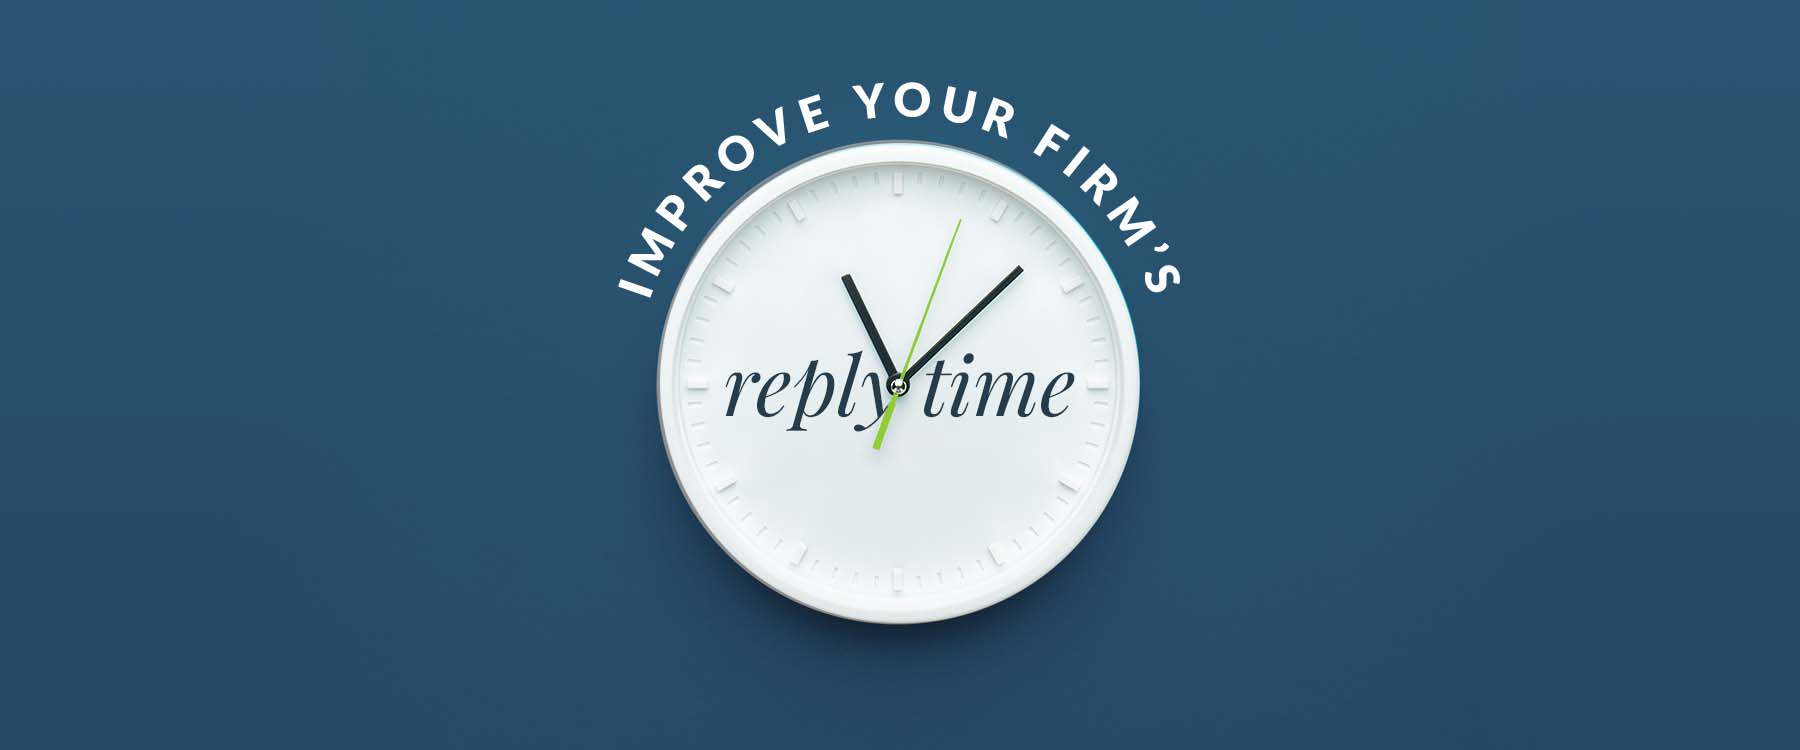 Graphic image of clock displaying 'reply time'